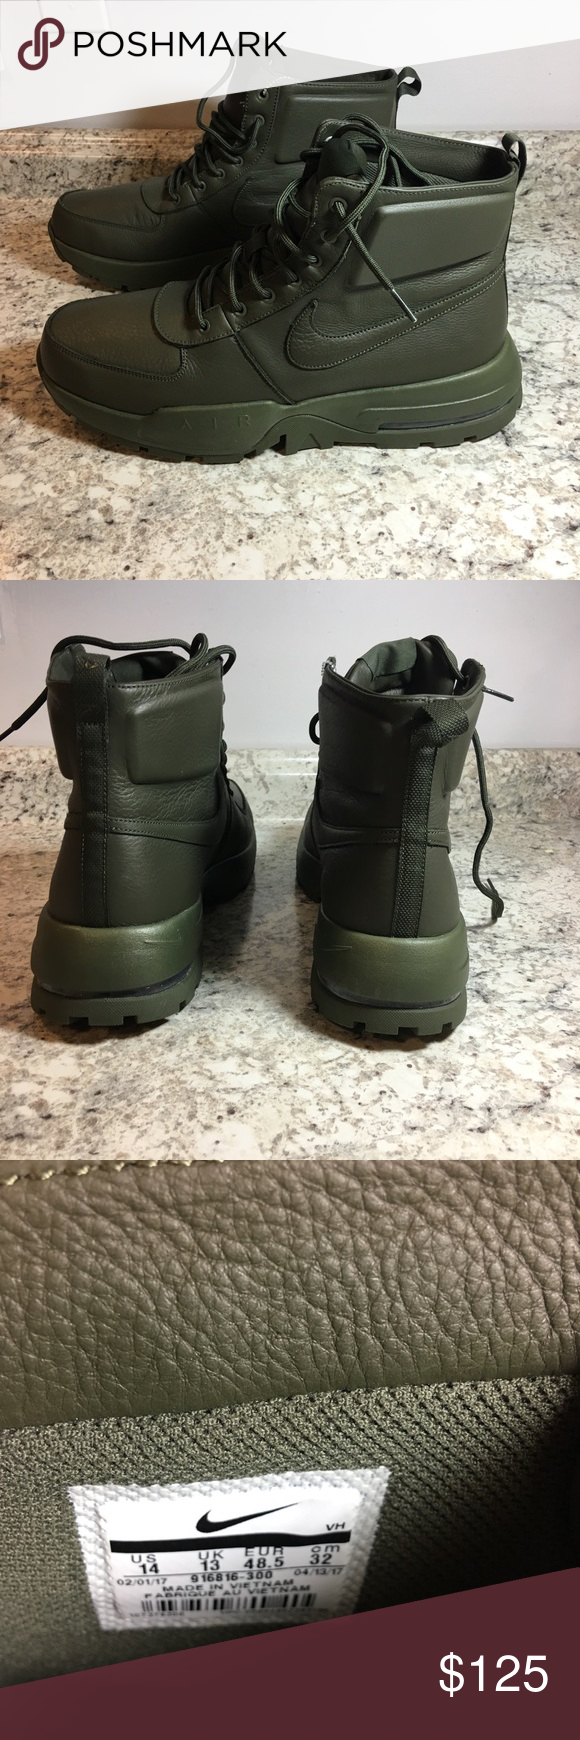 Nike air max goaterra 2.0 waterproof boots